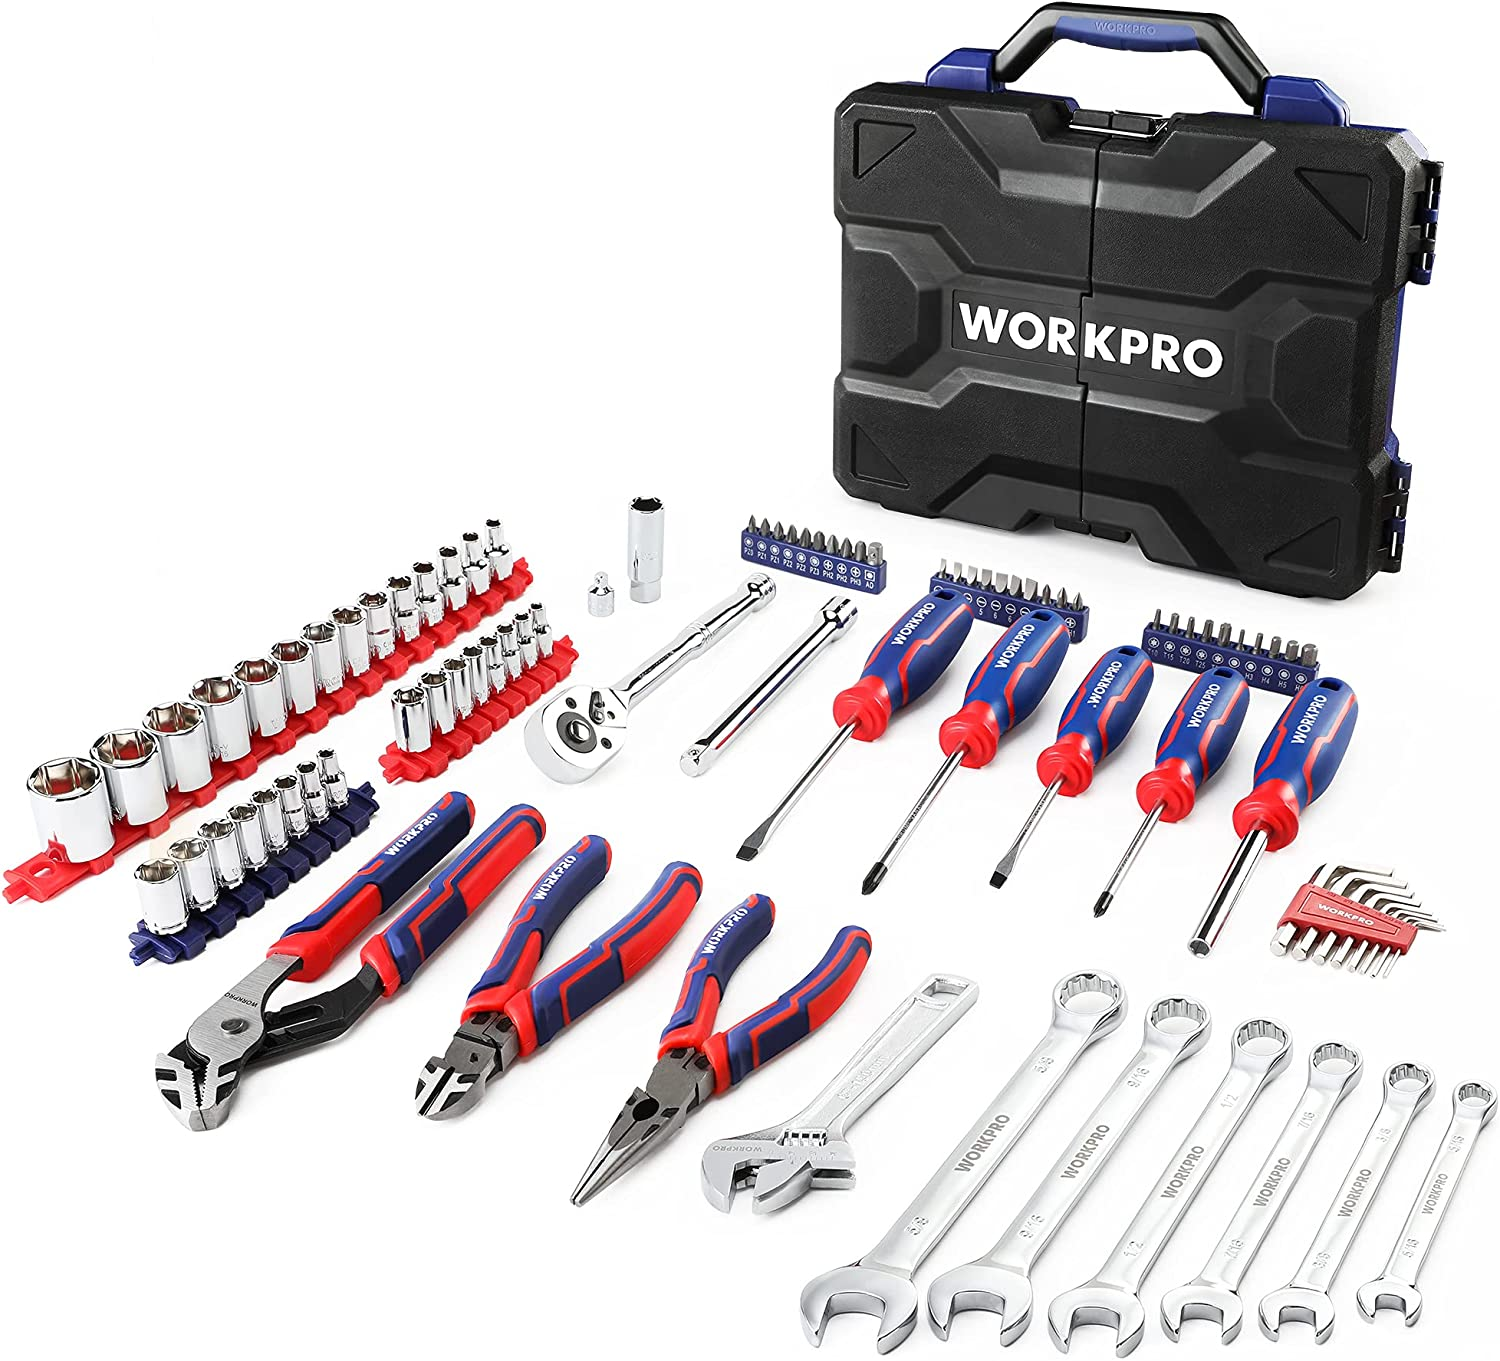 WORKPRO 87-piece Max 56% OFF Tool Set Mechanic S Tools Includes Kit Max 84% OFF Pliers